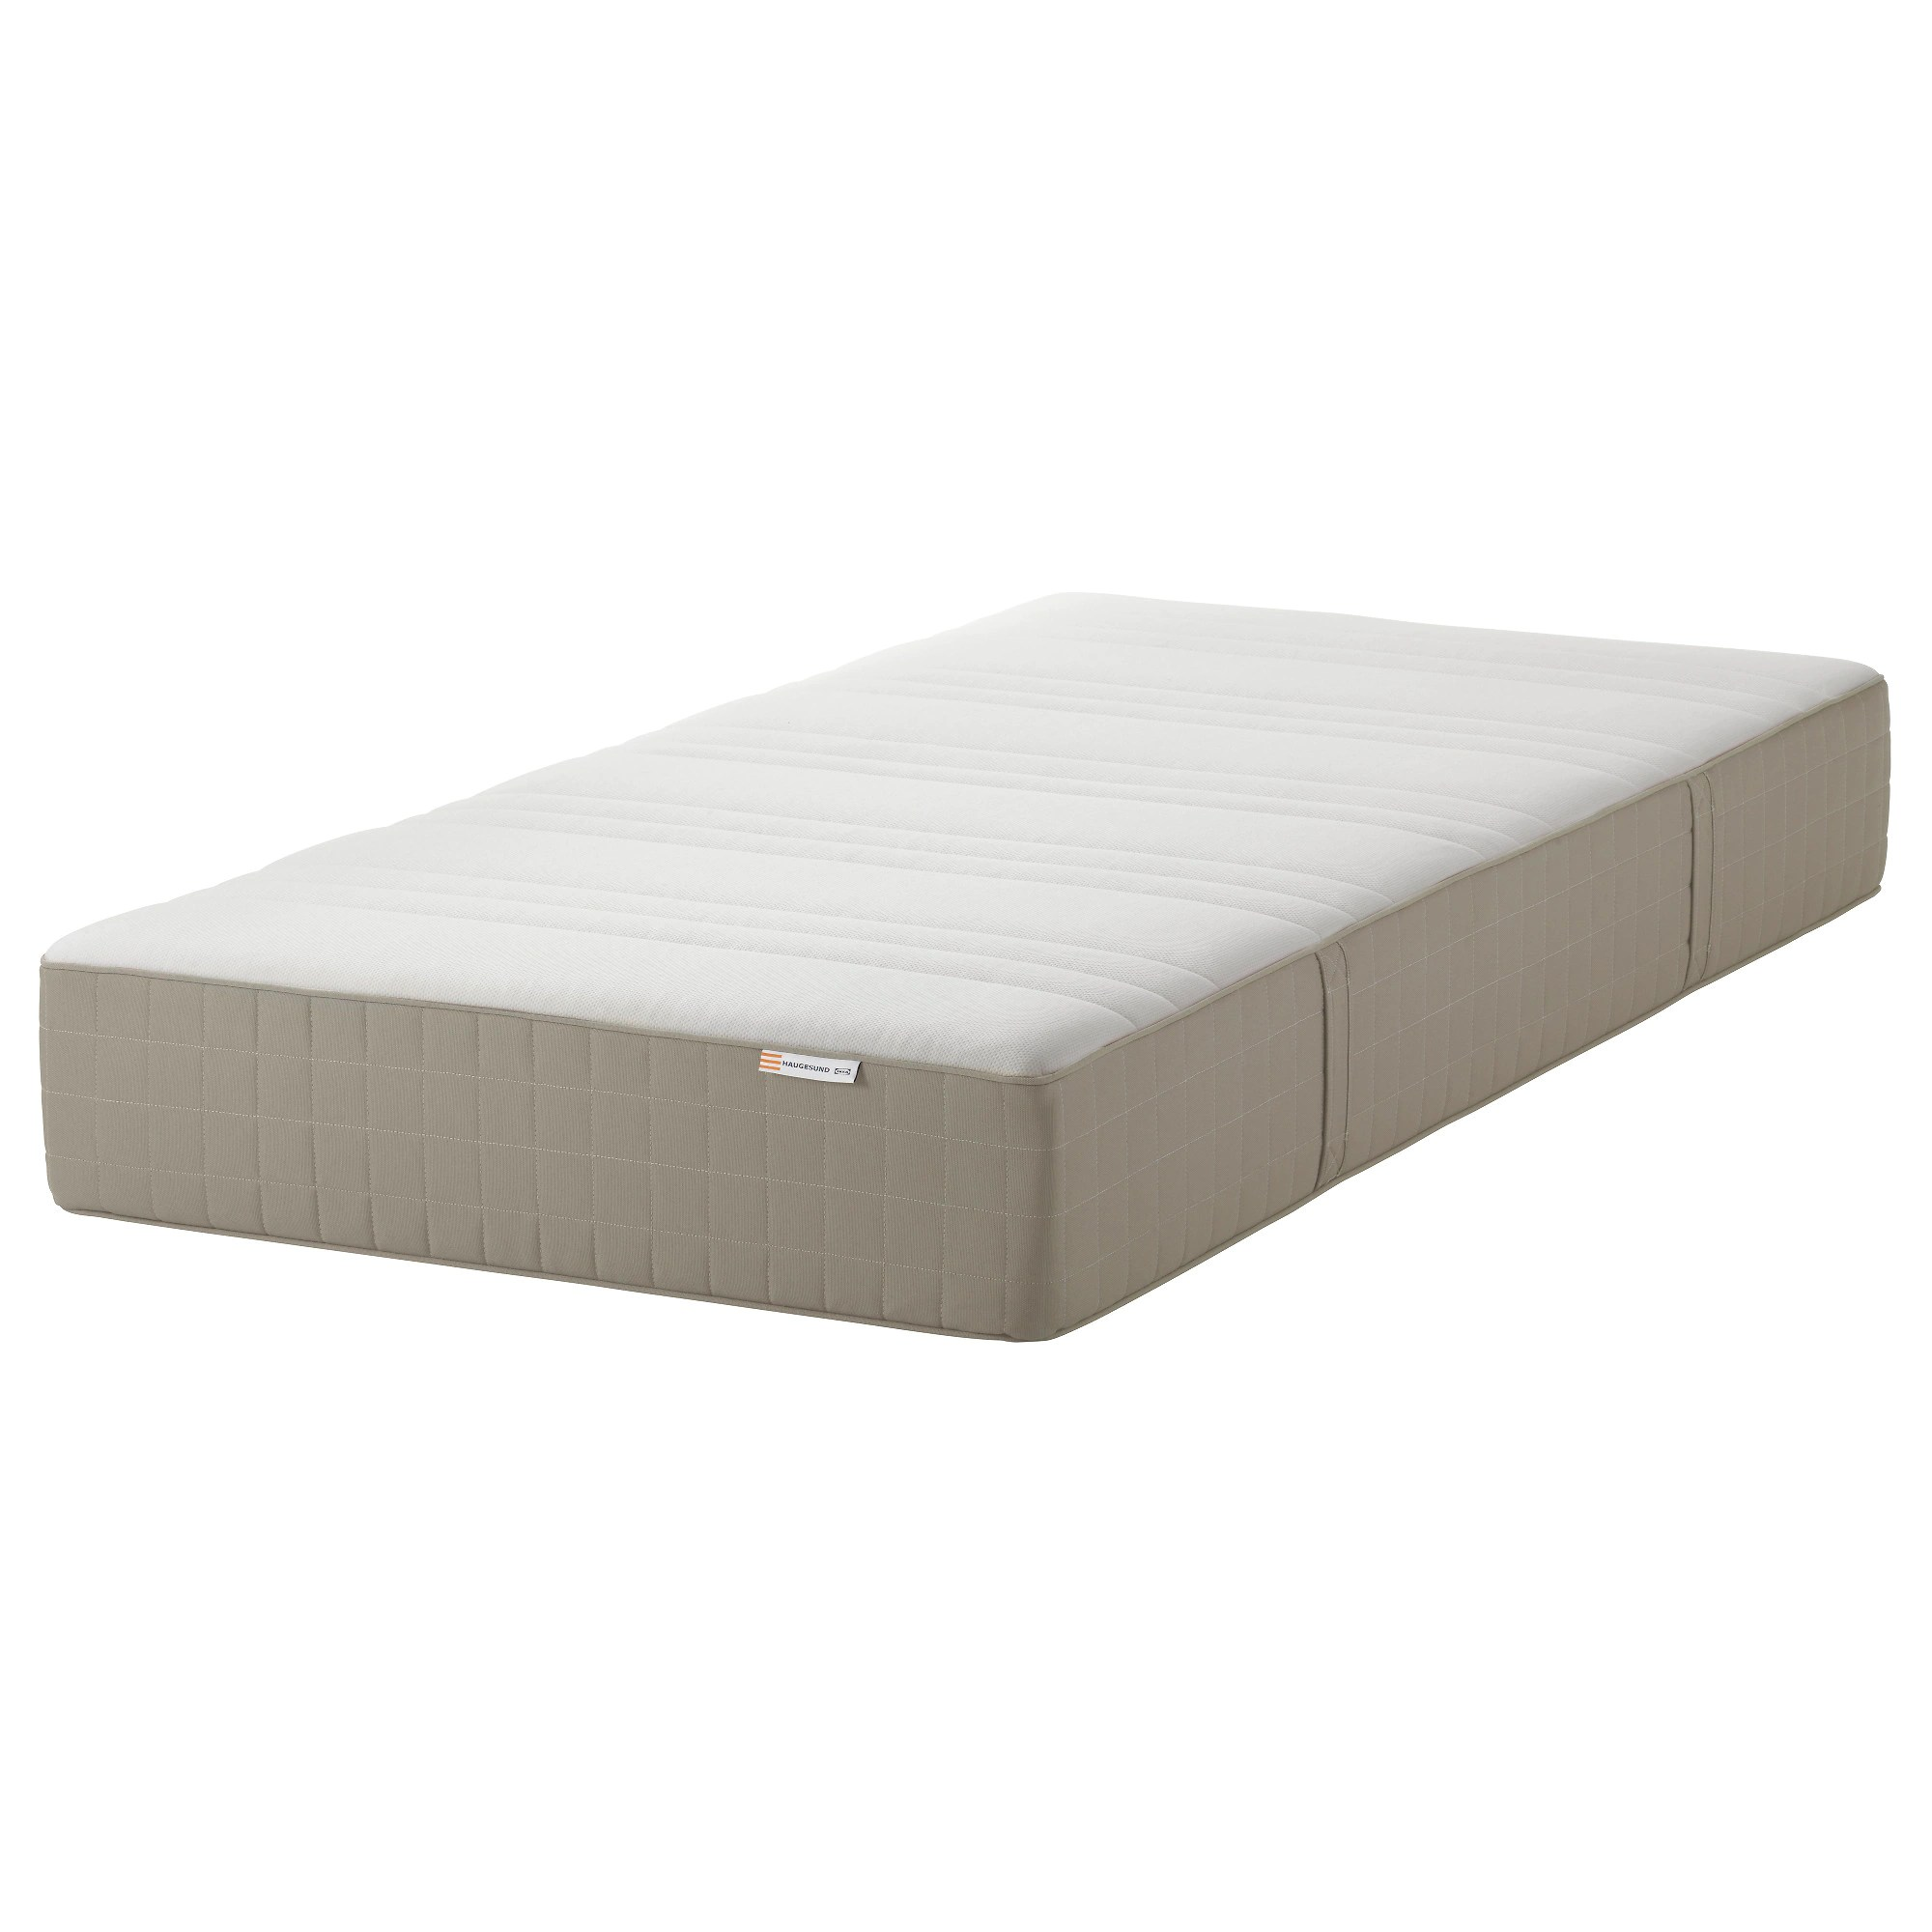 Box Spring Haugesund Spring Mattress Medium Firm Dark Beige